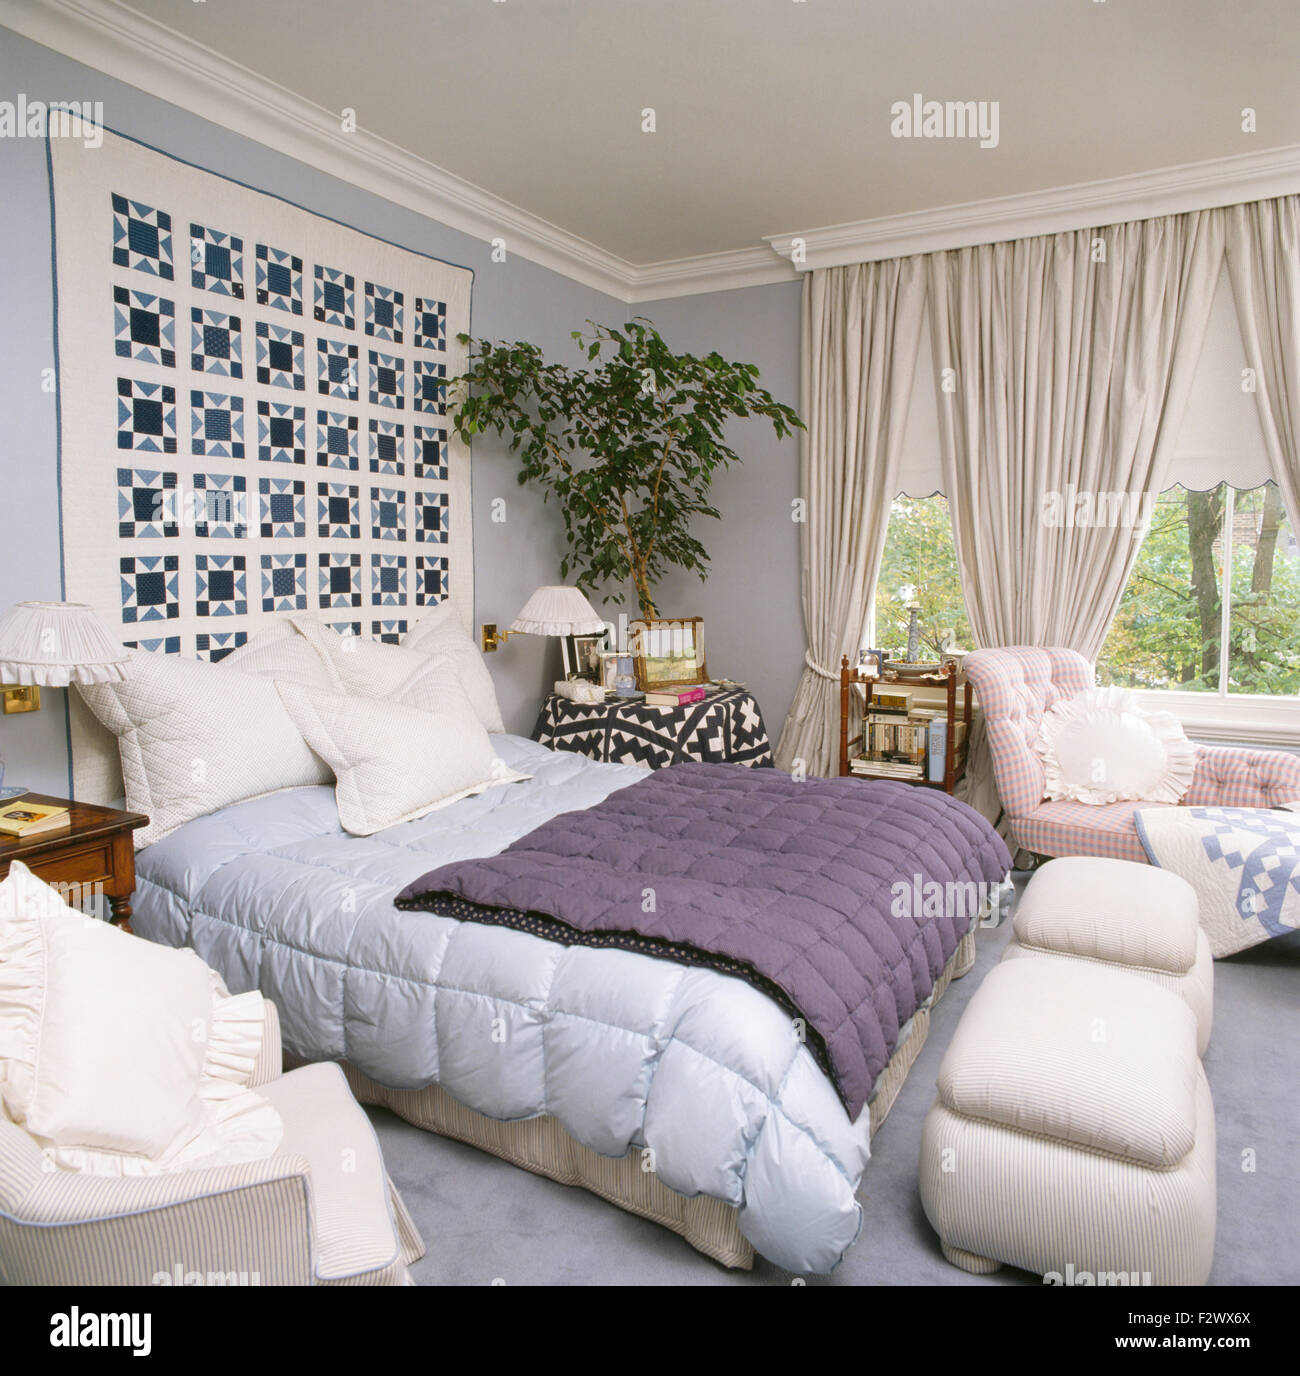 Pale Blue Bedroom Patchwork Quilt On Wall Above Bed With Pale Blue And Purple Quilts